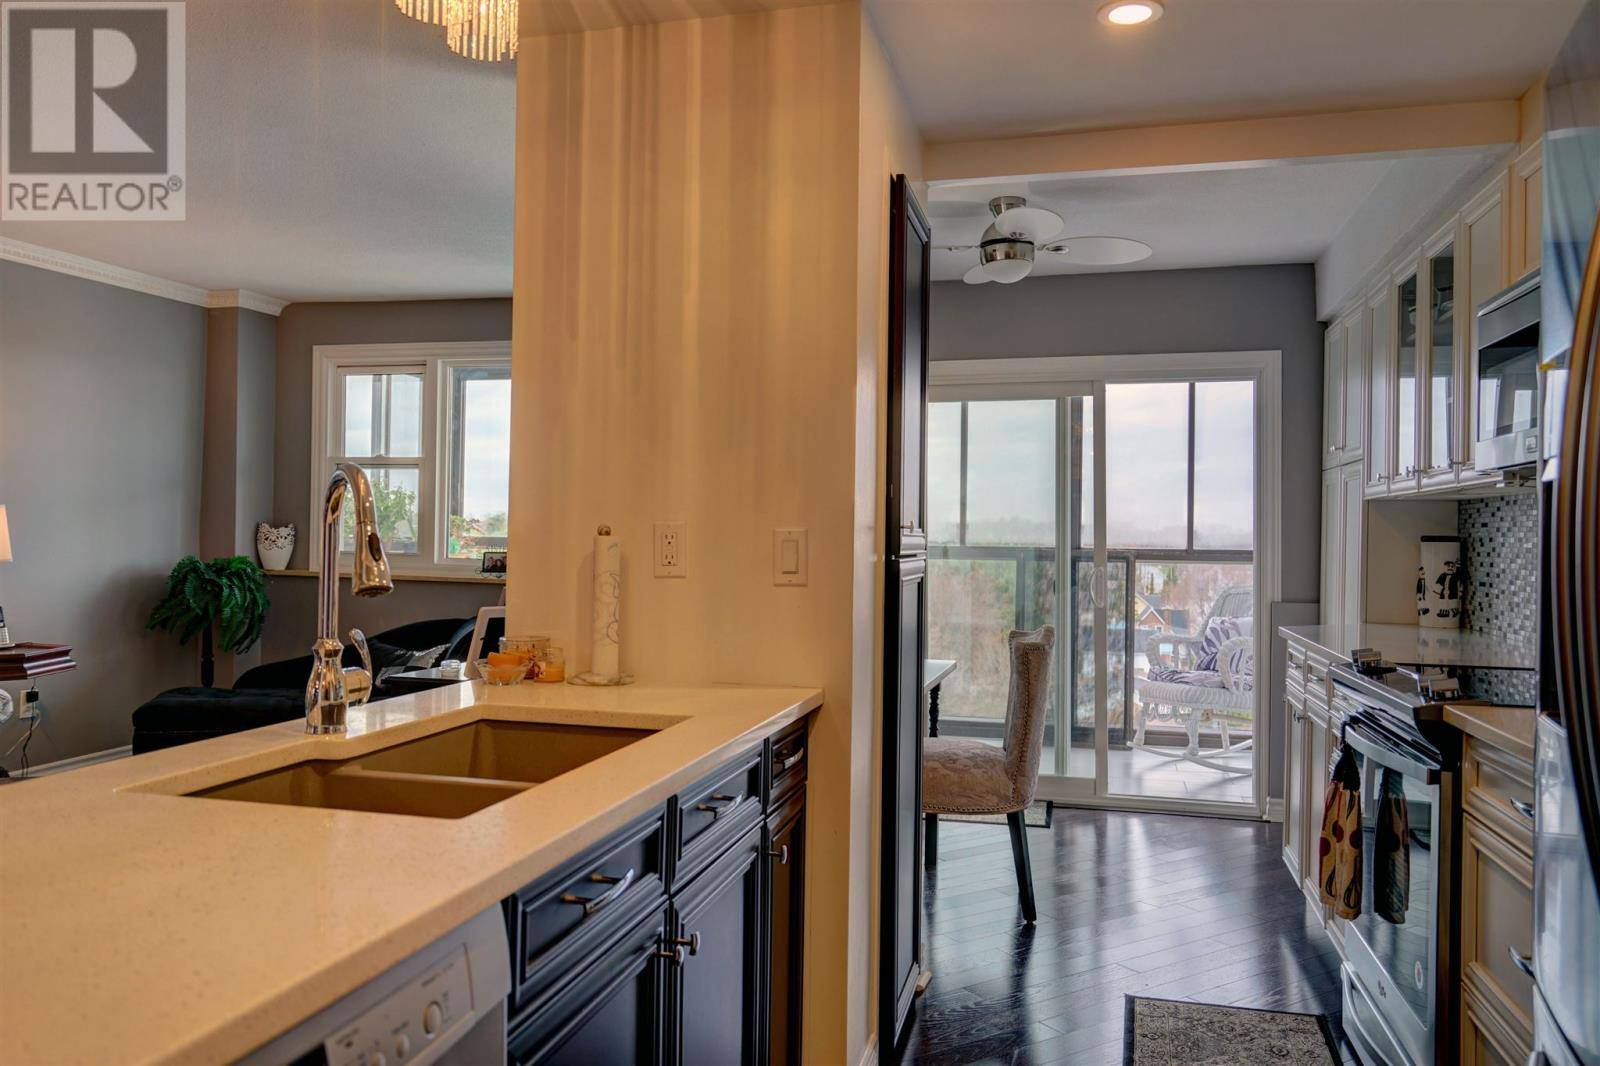 Condo for sale at 2 Mowat Ave Unit 906 Kingston Ontario - MLS: K20001449